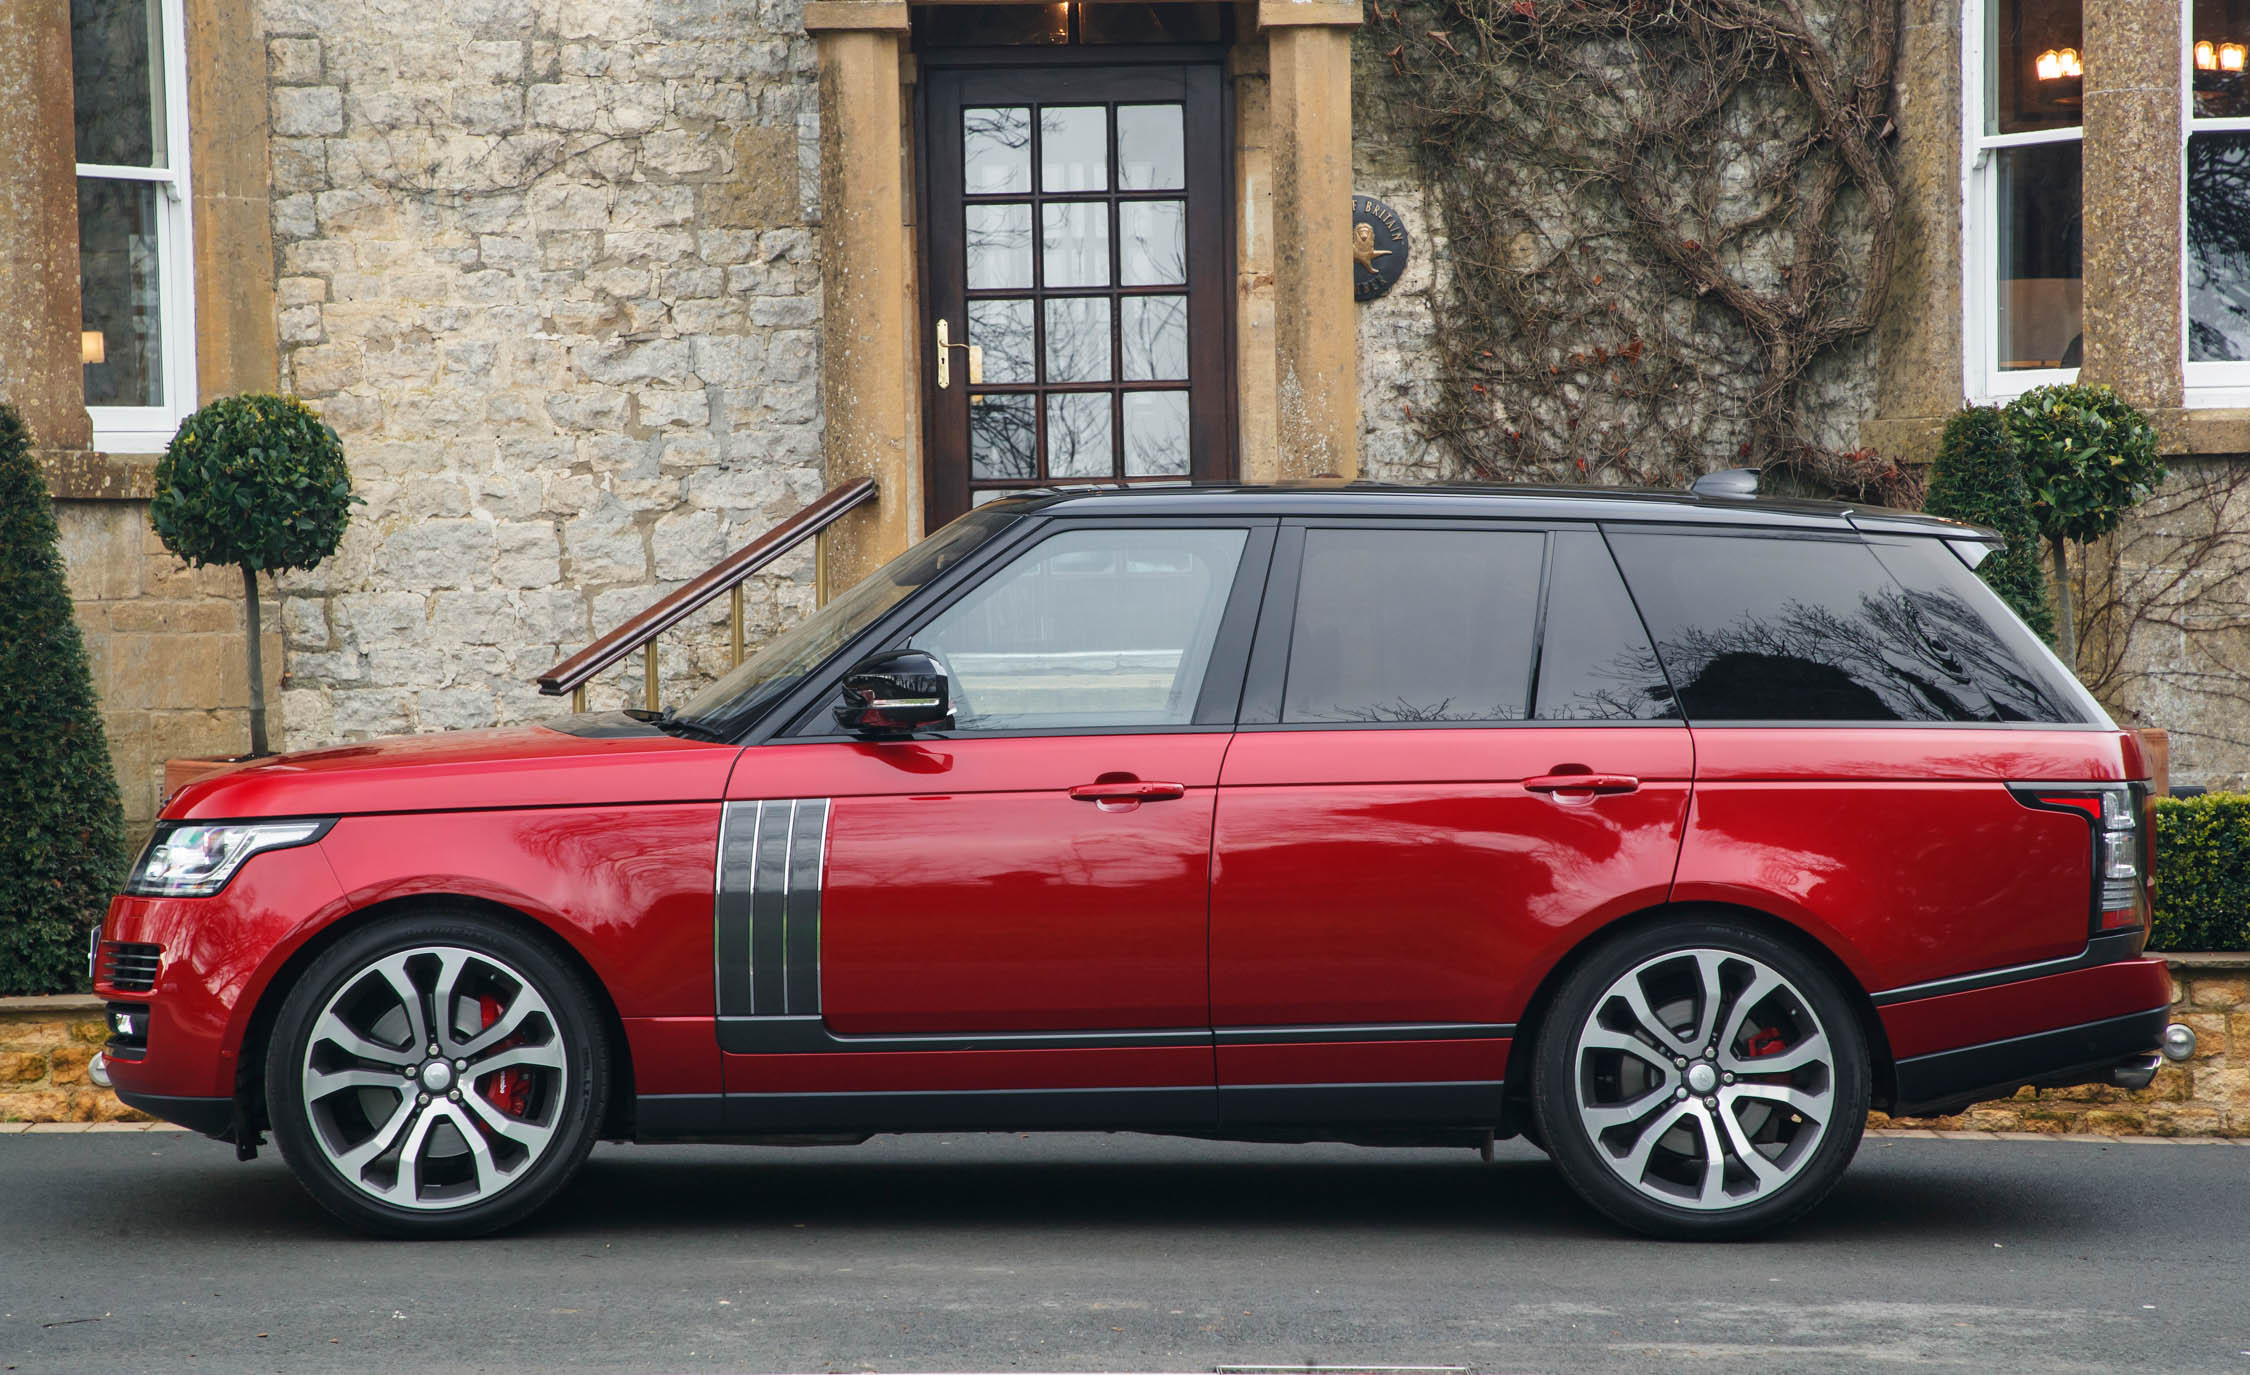 2017 Land Rover Range Rover SVAutobiography Dynamic Red Exterior Side View (Photo 10 of 24)